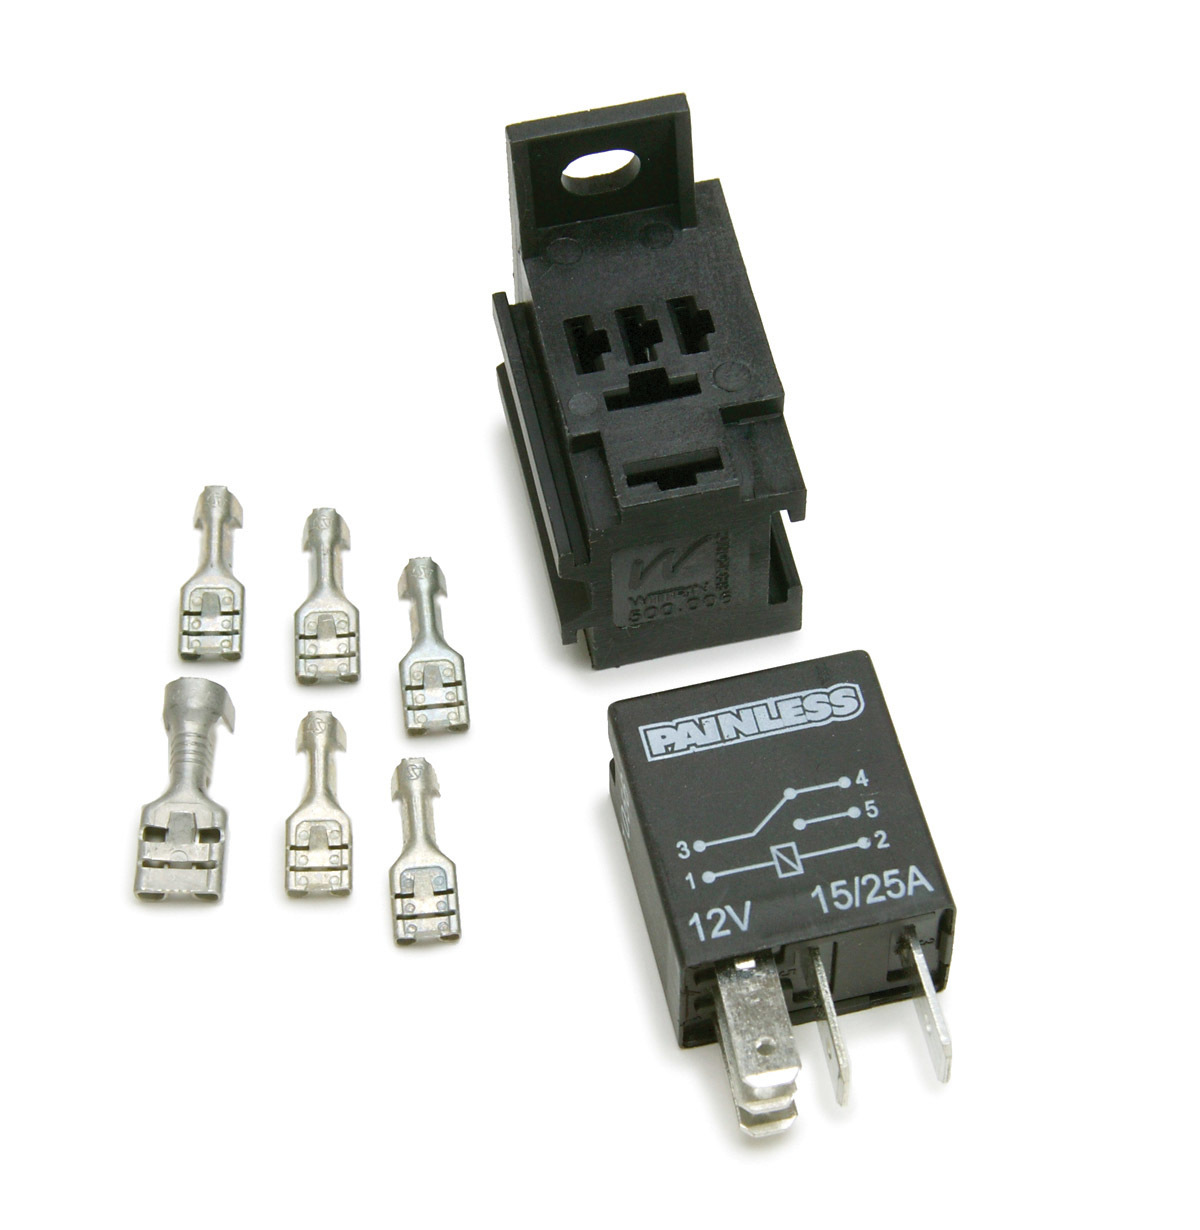 Painless Wiring 80136 Relay Switch, Single Pole, Double Throw, 15 / 25 amp, 12V, Universal, Kit